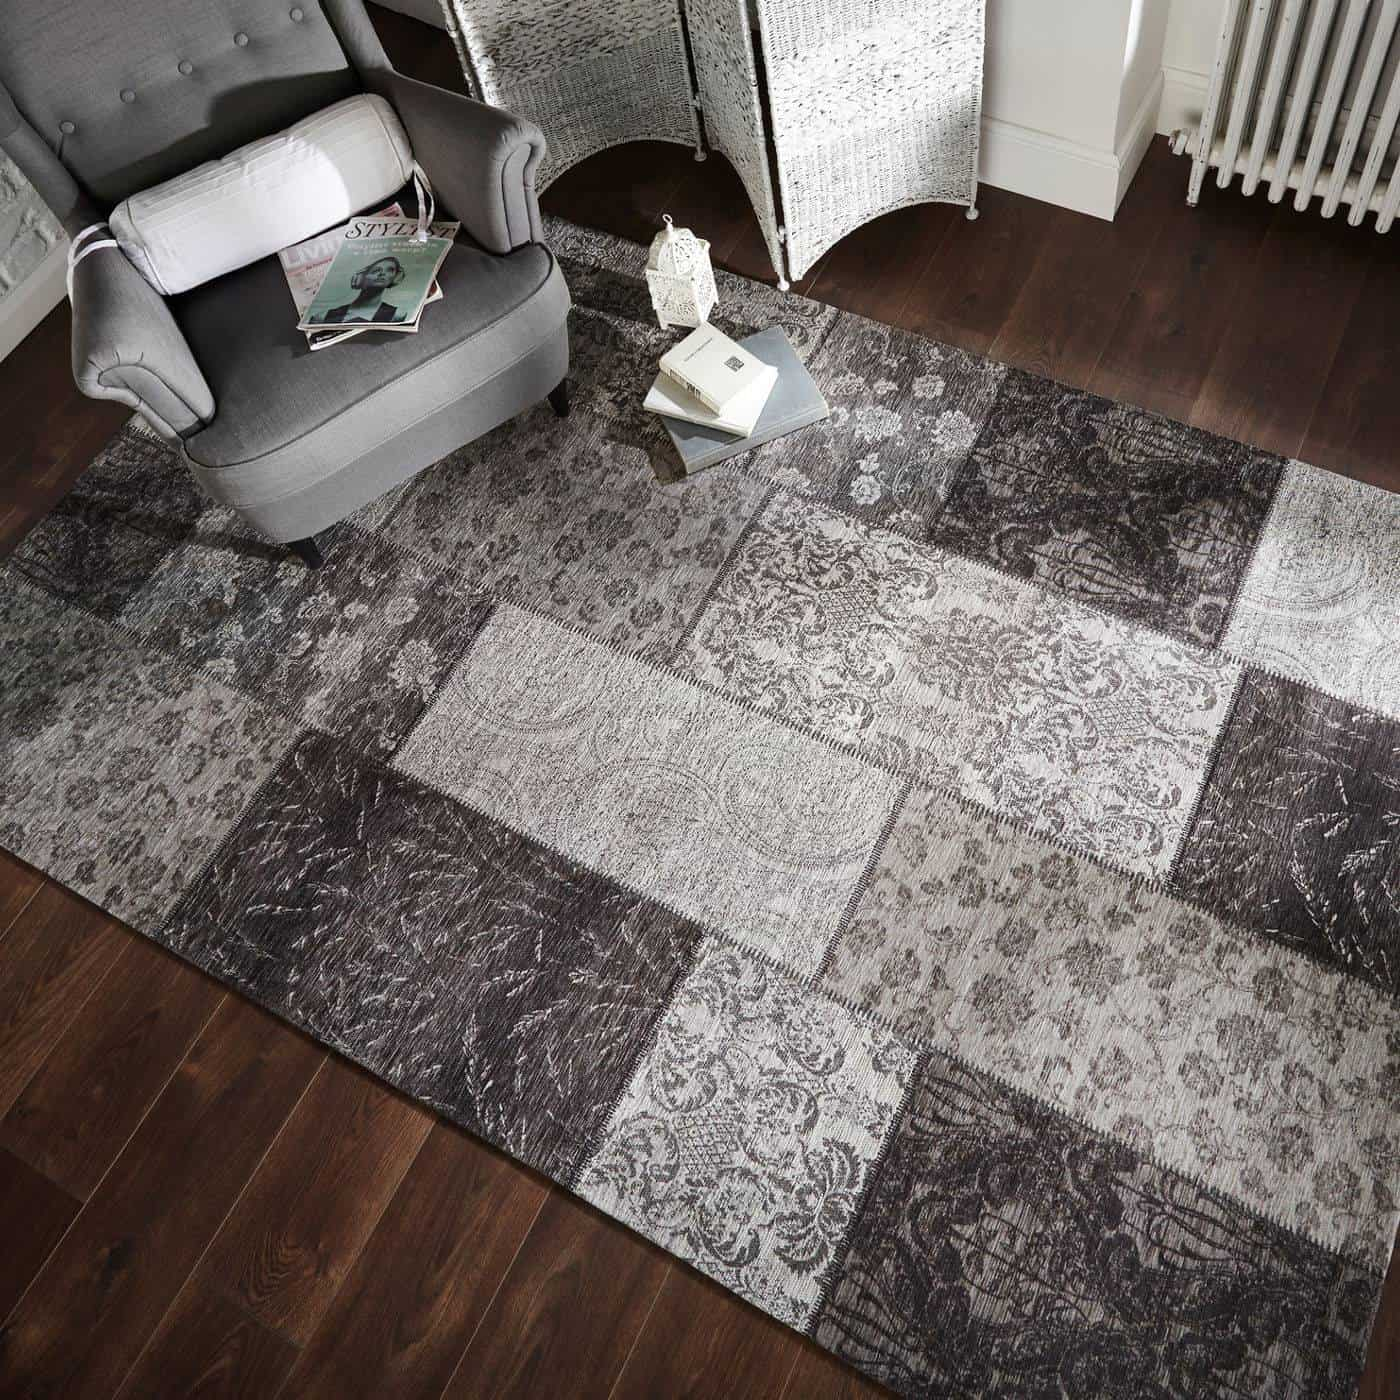 Win a beautiful patchwork rug